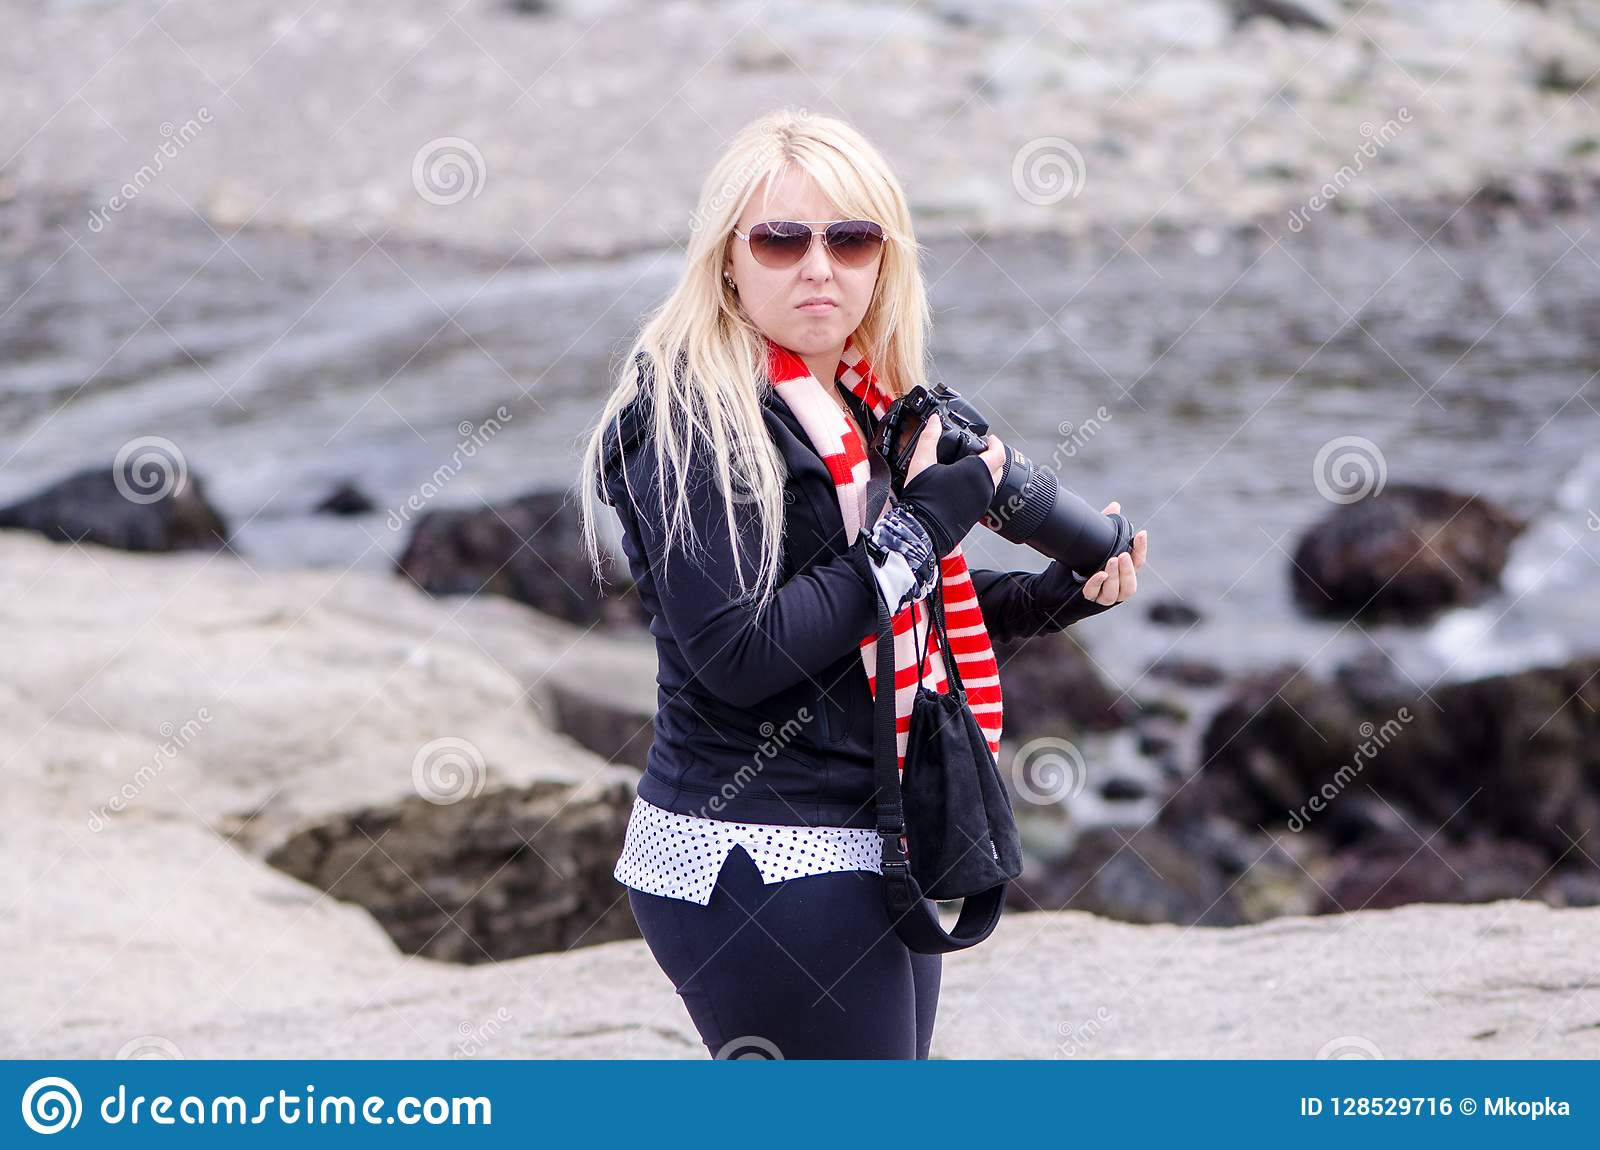 A blonde female photographer looks angry and upset